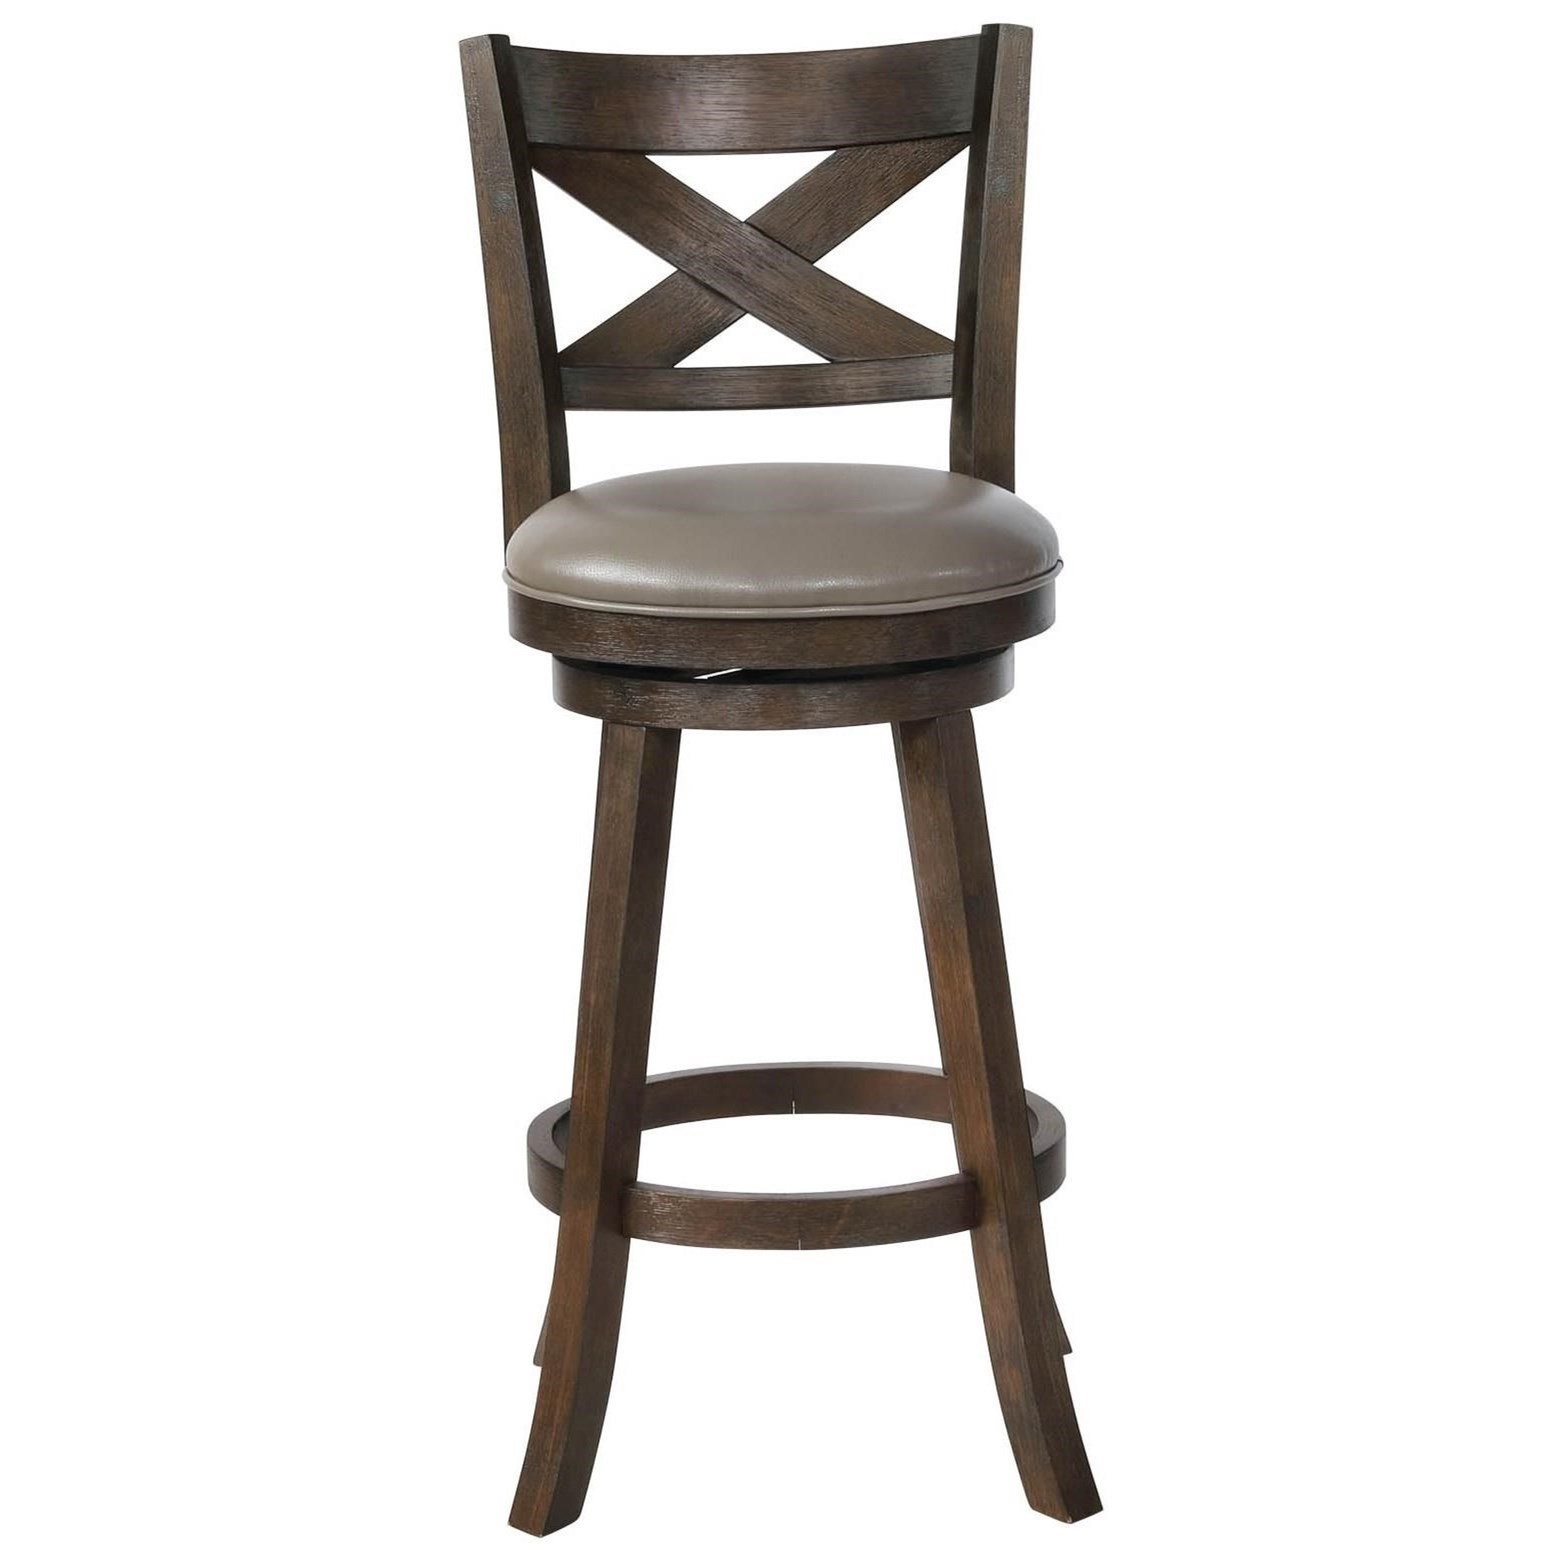 Swivel Bar Chairs Bar Stools Cm Swivel Bar Stool With Upholstered Seat By Crown Mark At Royal Furniture